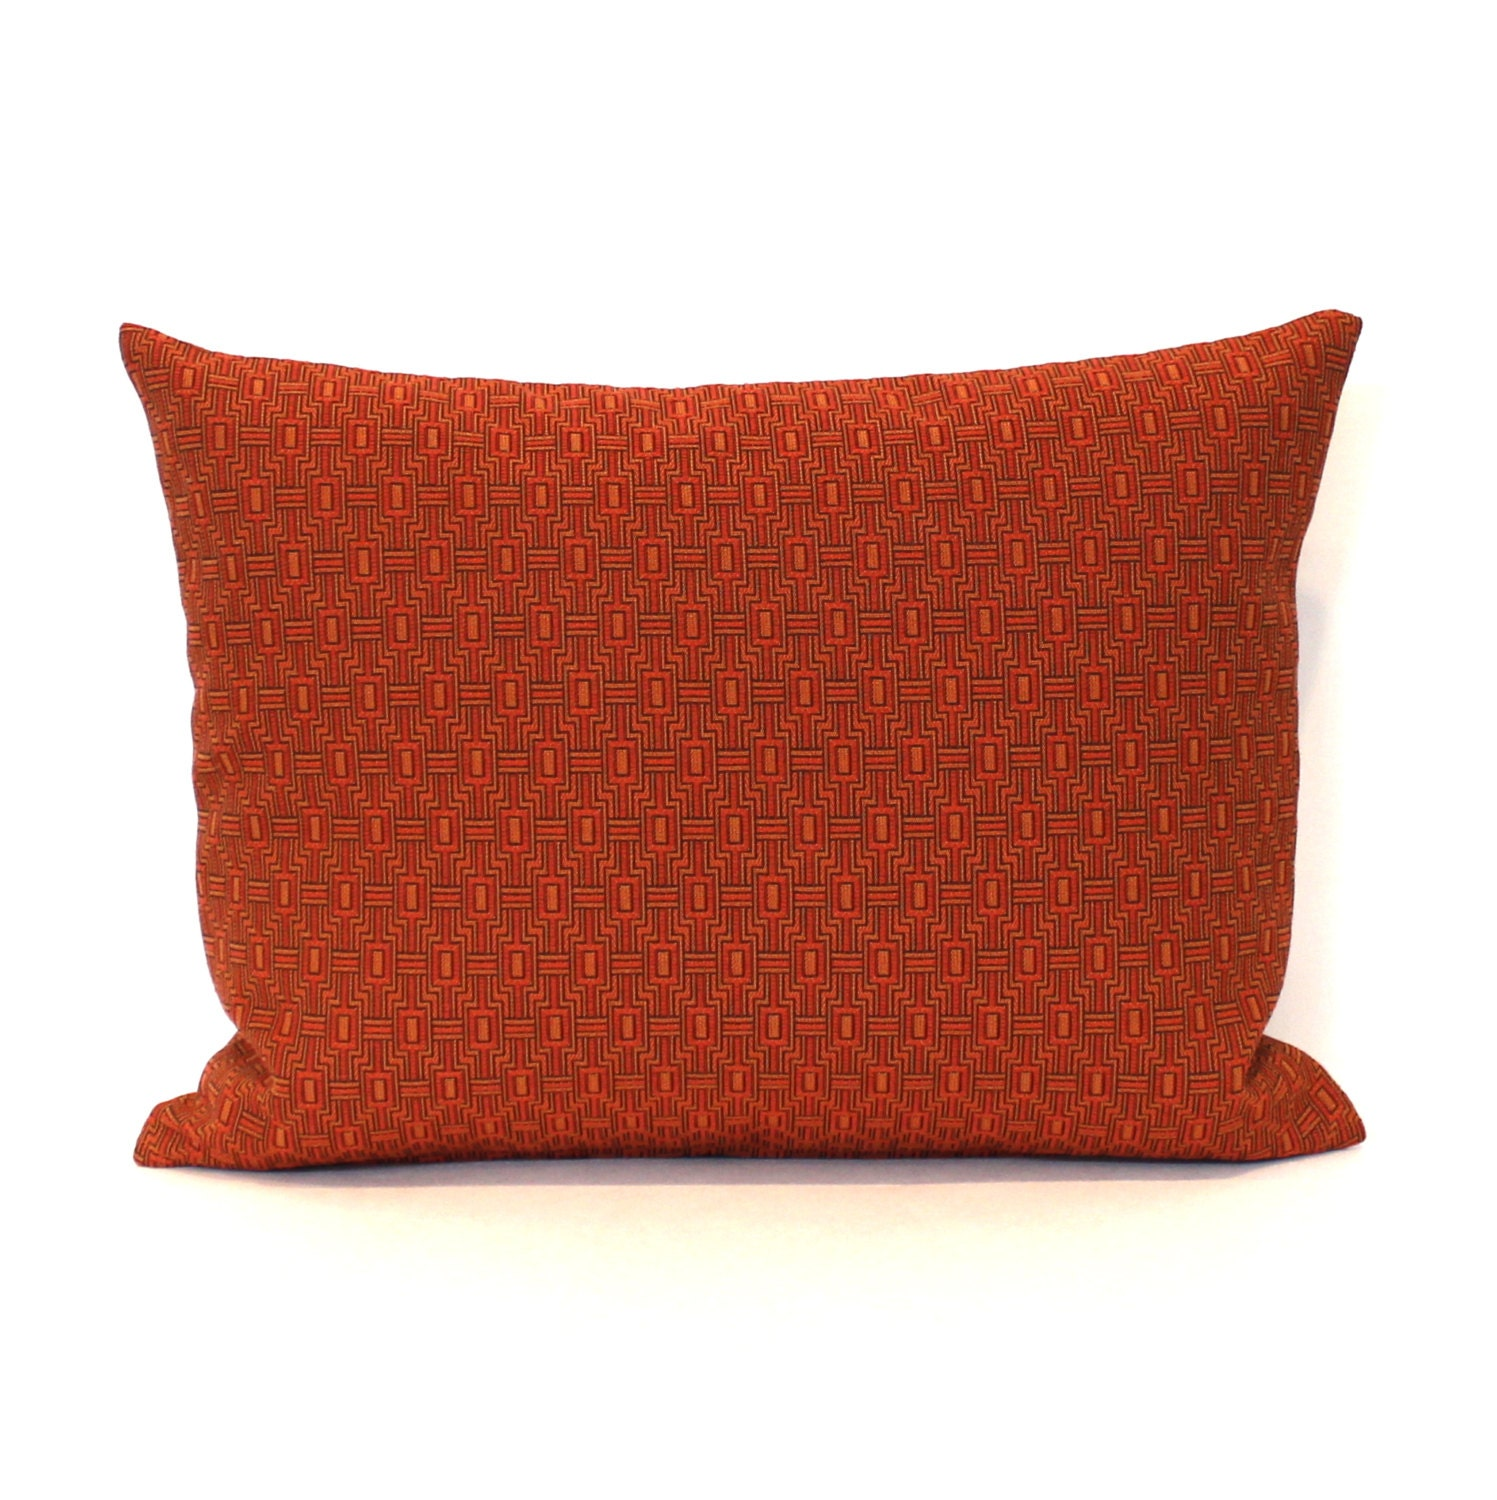 Decorative Orange Lumbar Pillow : Lumbar Pillow Cover Rust Orange Geometric Decorative Oblong